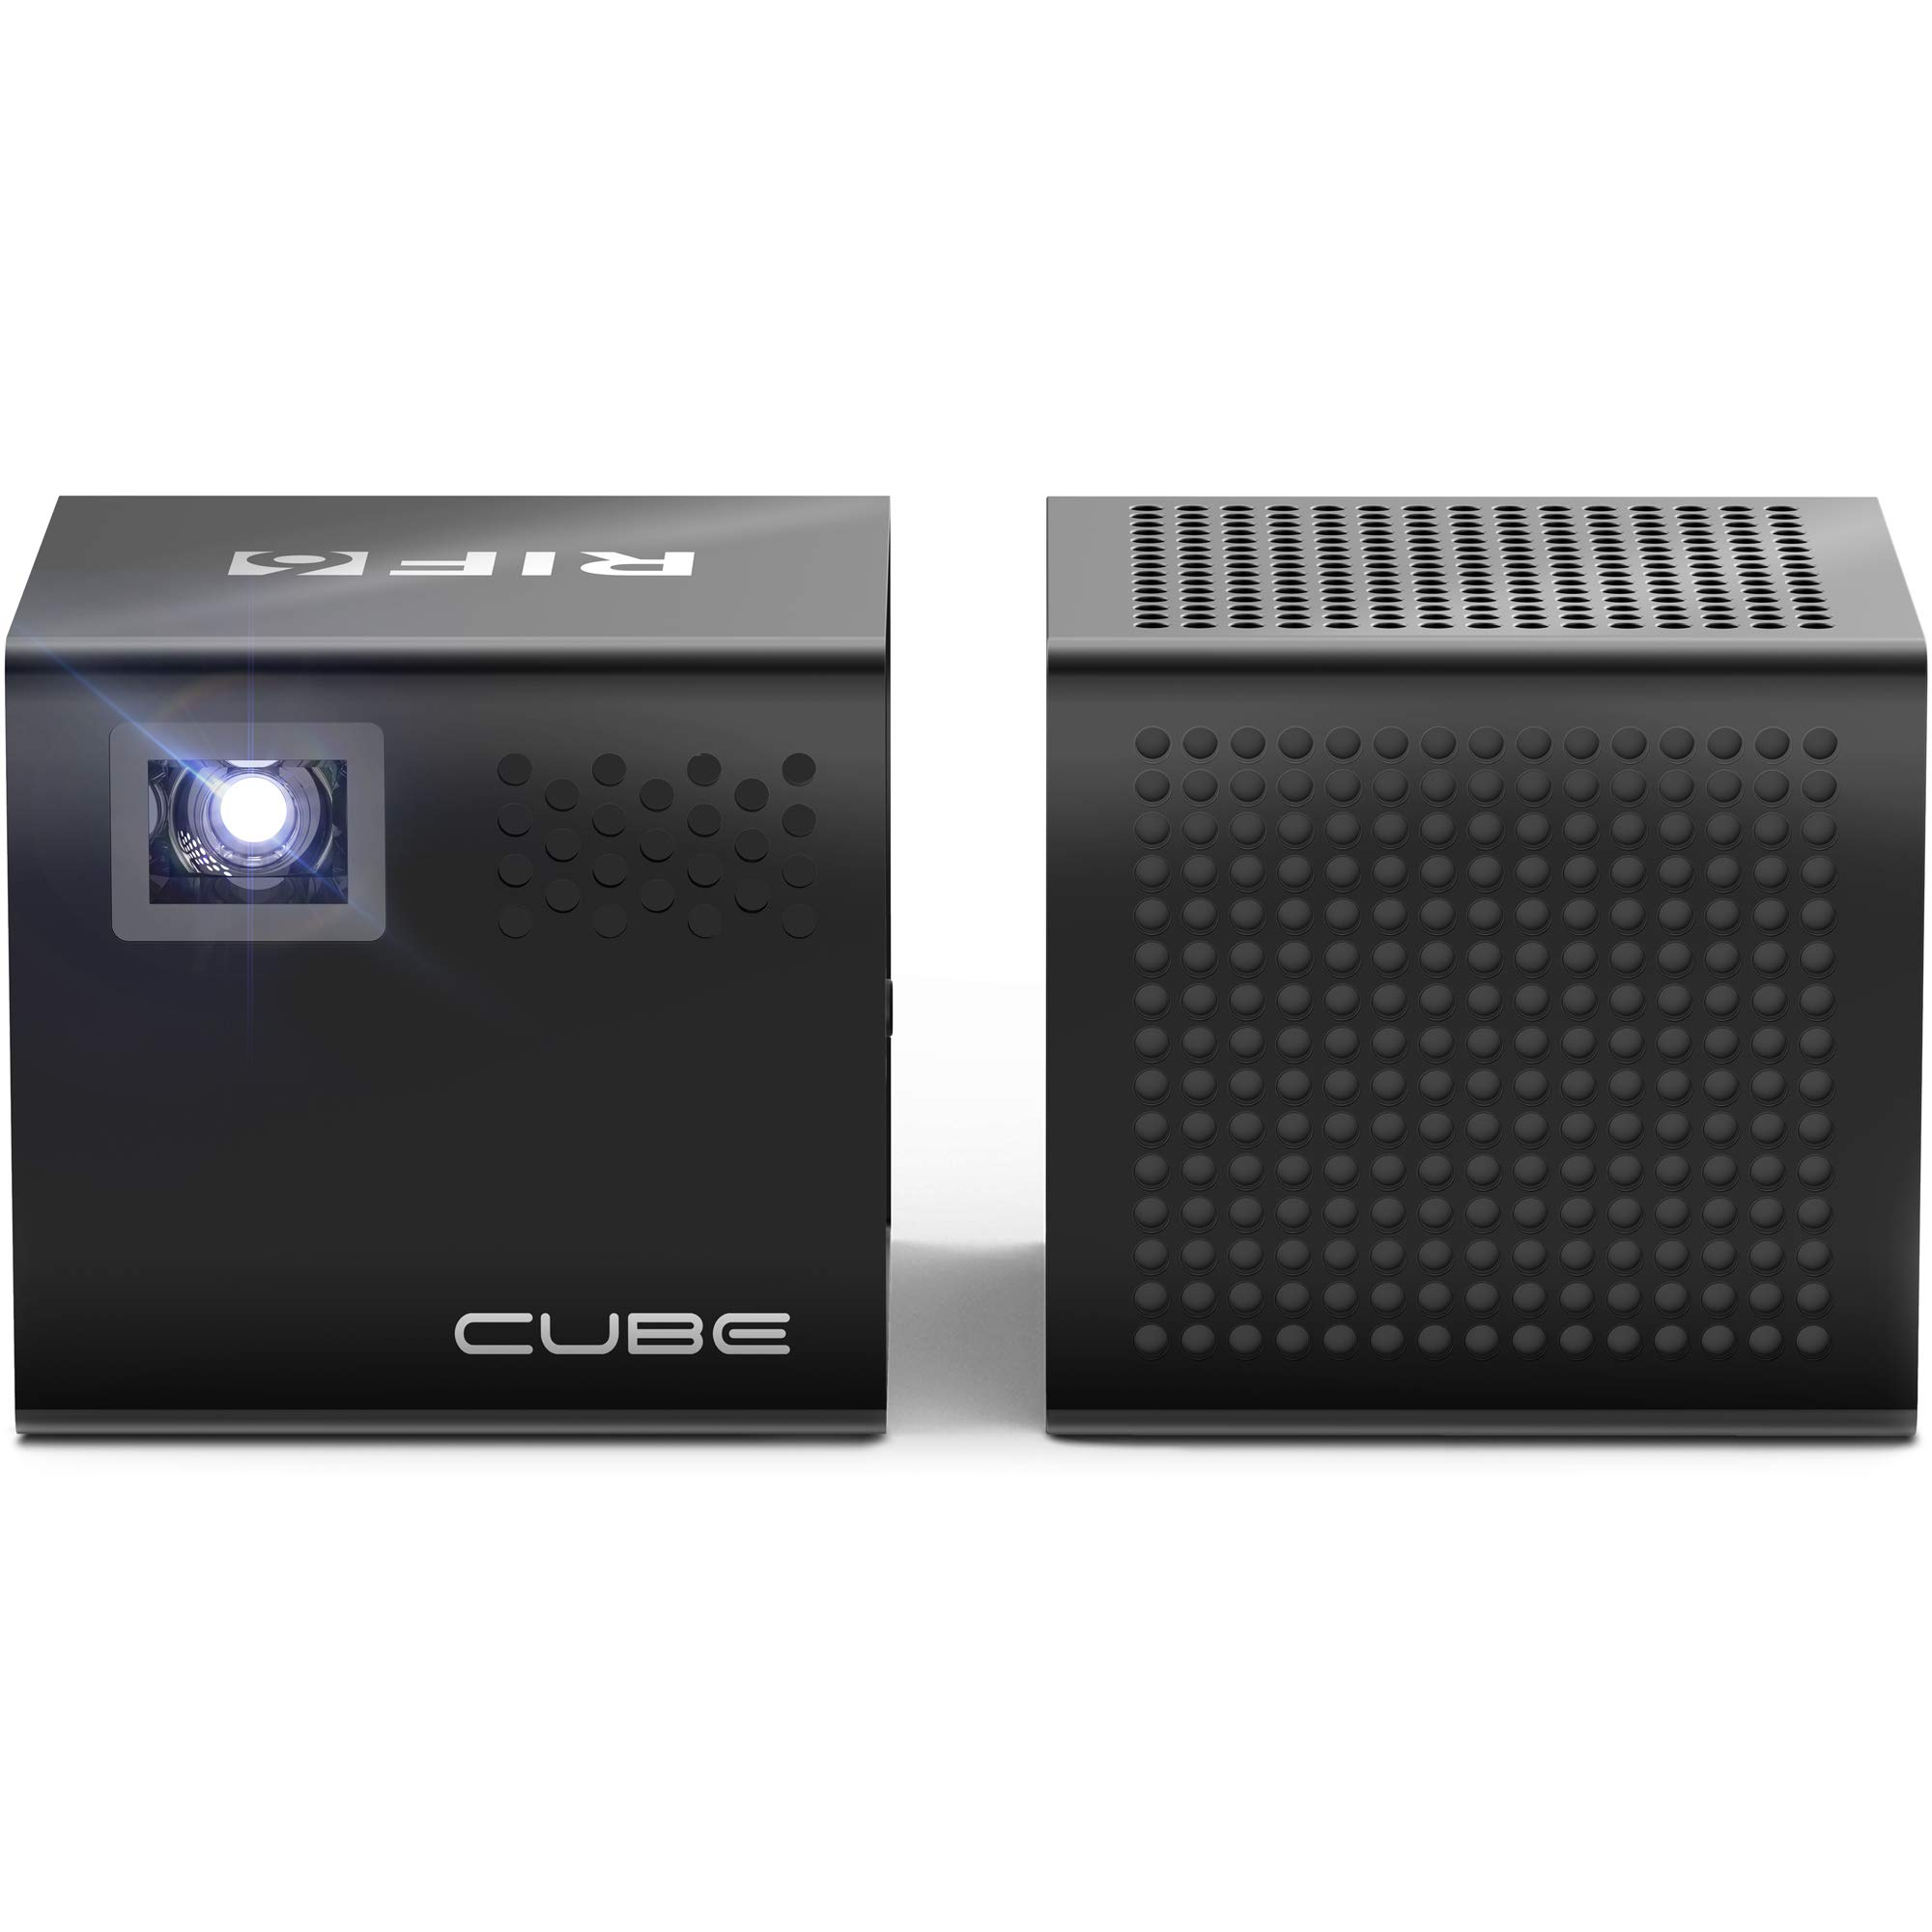 RIF6 Cube Full LED Mini Projector - 1080p Supported Portable Projector with Built-in Speakers, HDMI Input for Smartphone, Laptop, Gaming and Movies - Includes Bluetooth Speaker, Tripod and Remote